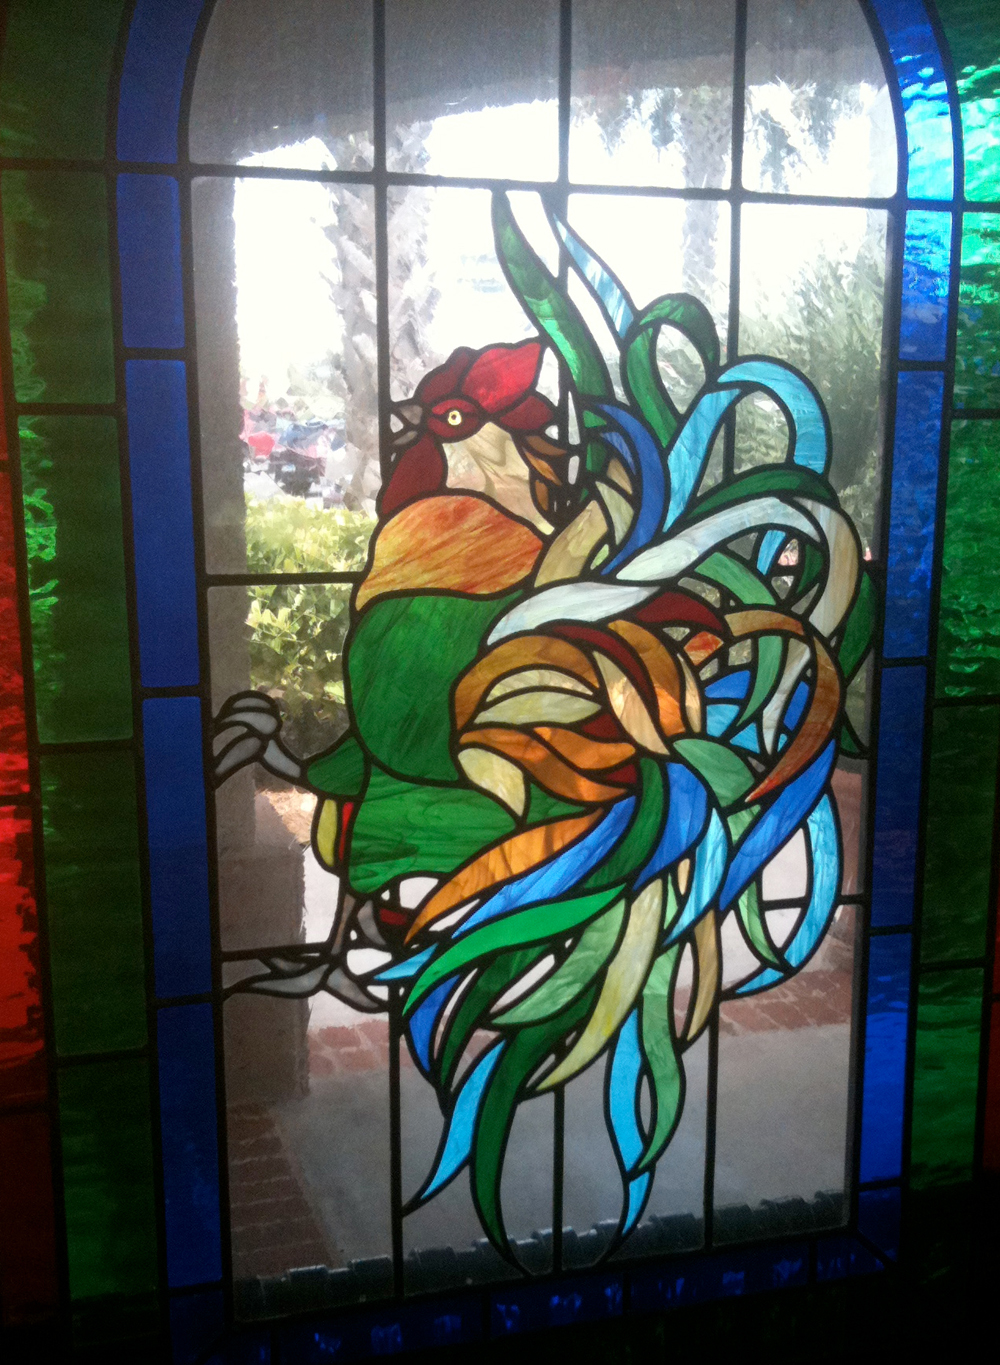 Commercial stained glass